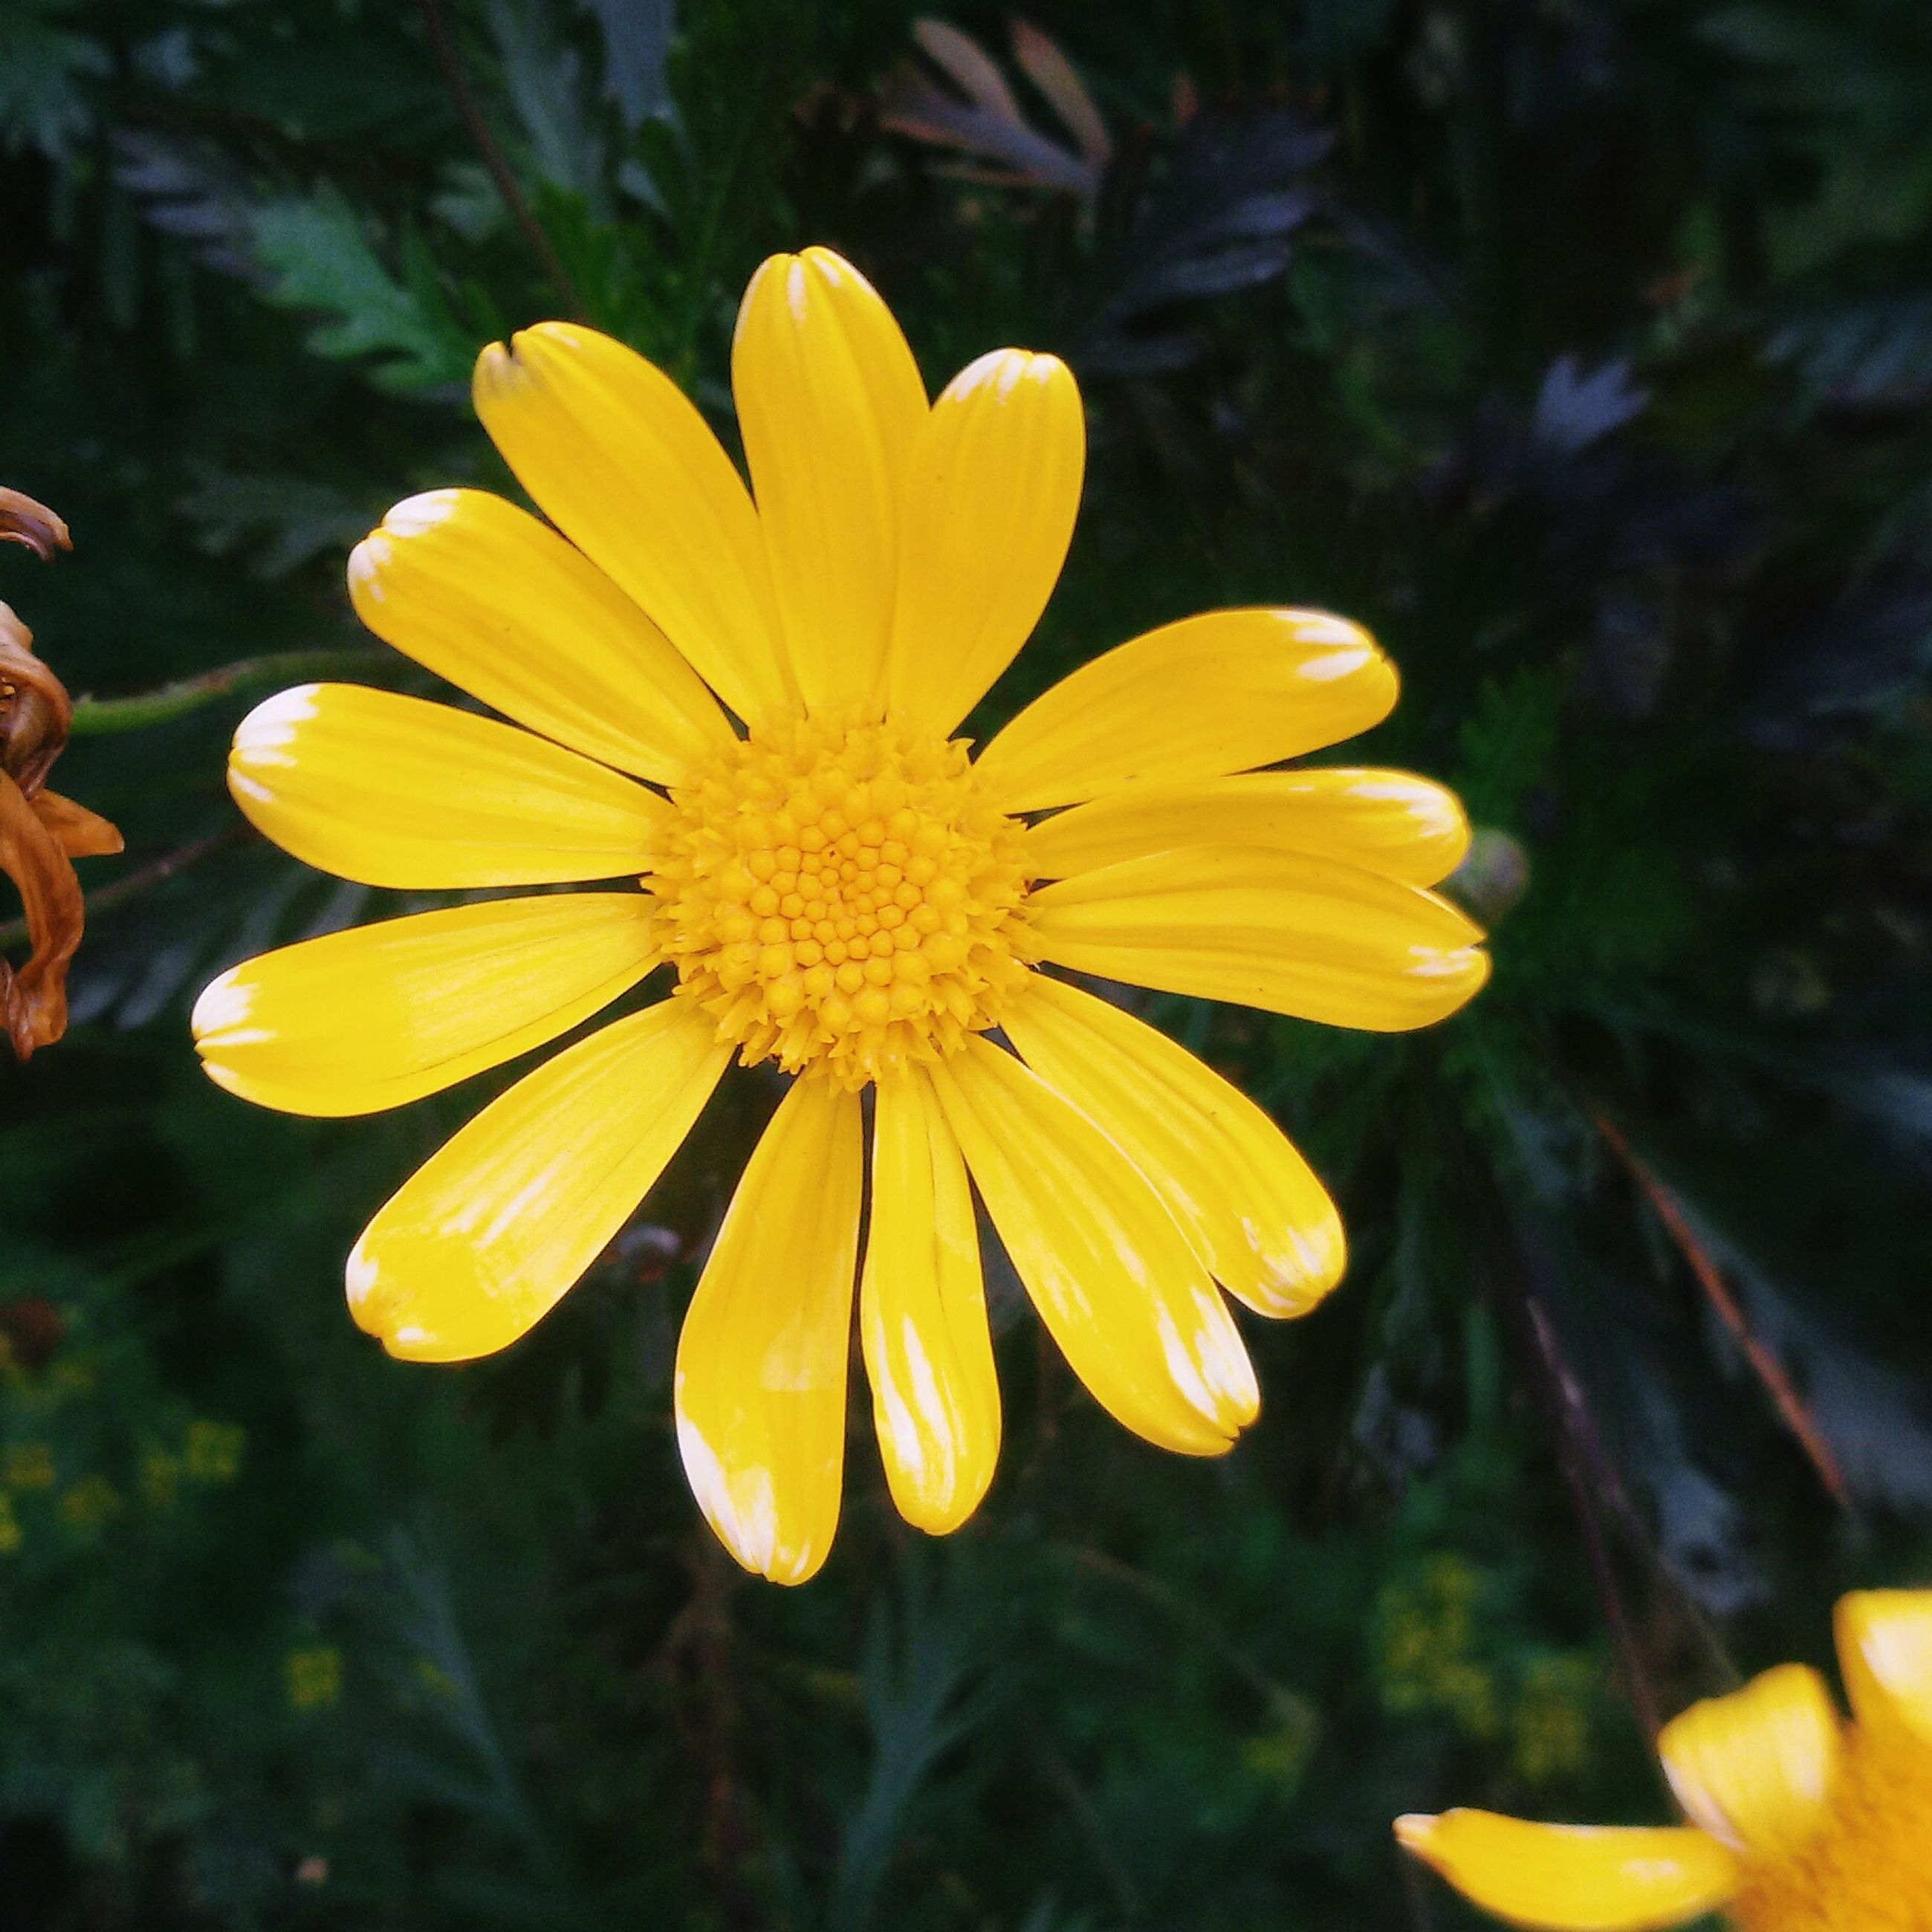 flower, petal, yellow, freshness, fragility, flower head, close-up, growth, focus on foreground, beauty in nature, blooming, pollen, single flower, nature, plant, in bloom, day, outdoors, water, no people